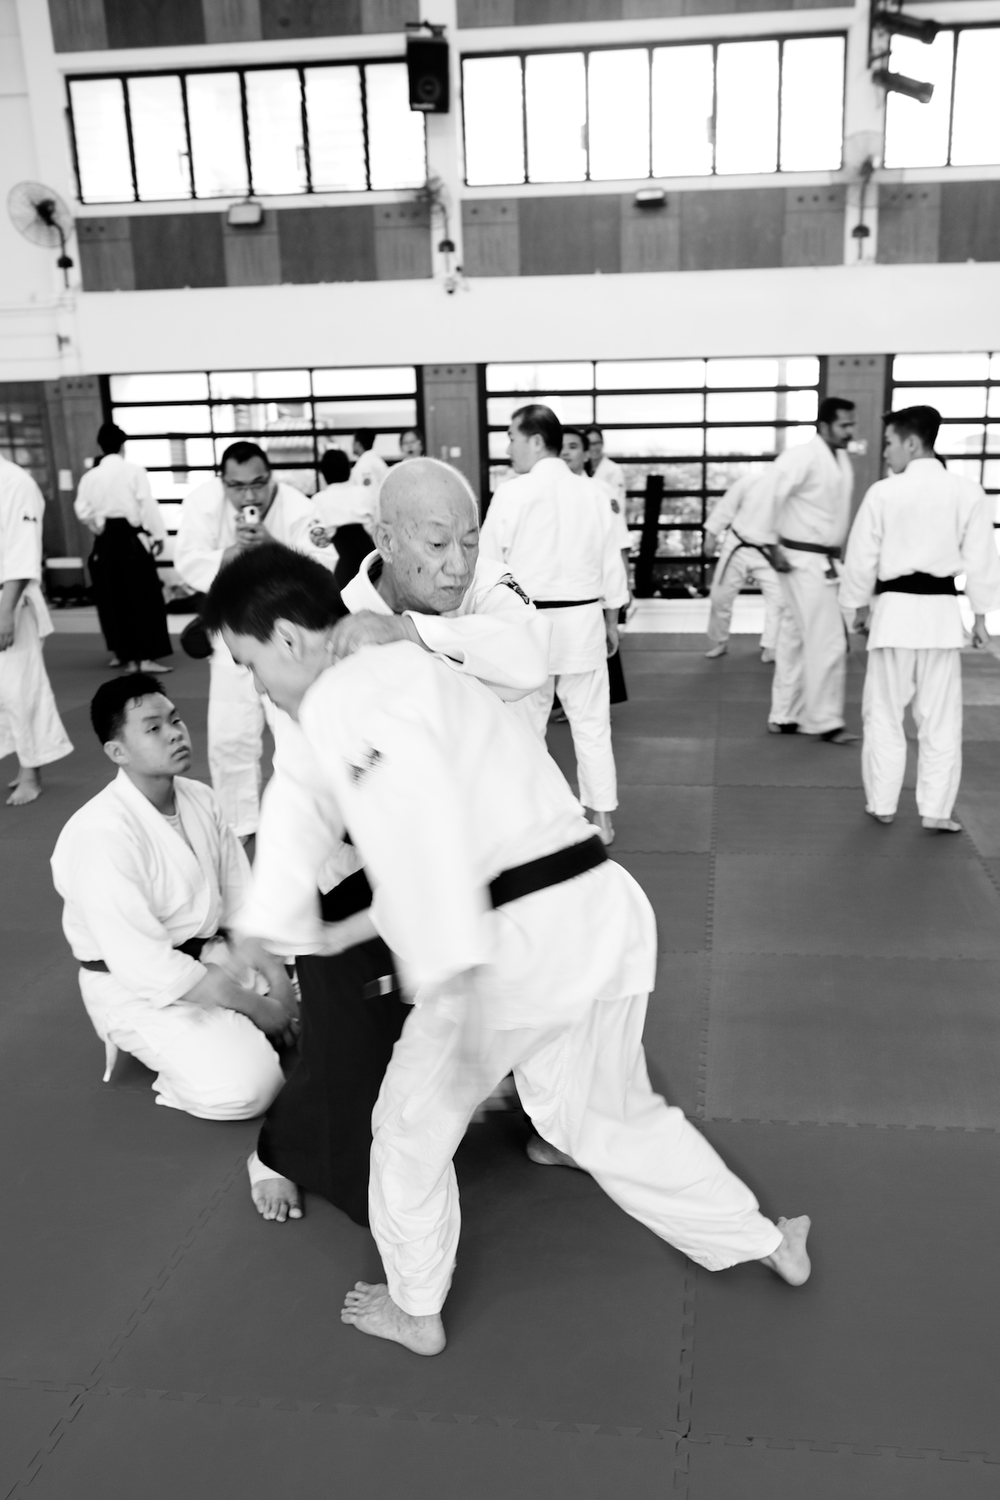 Aiki Friends Combined Training 2014 - Singapore